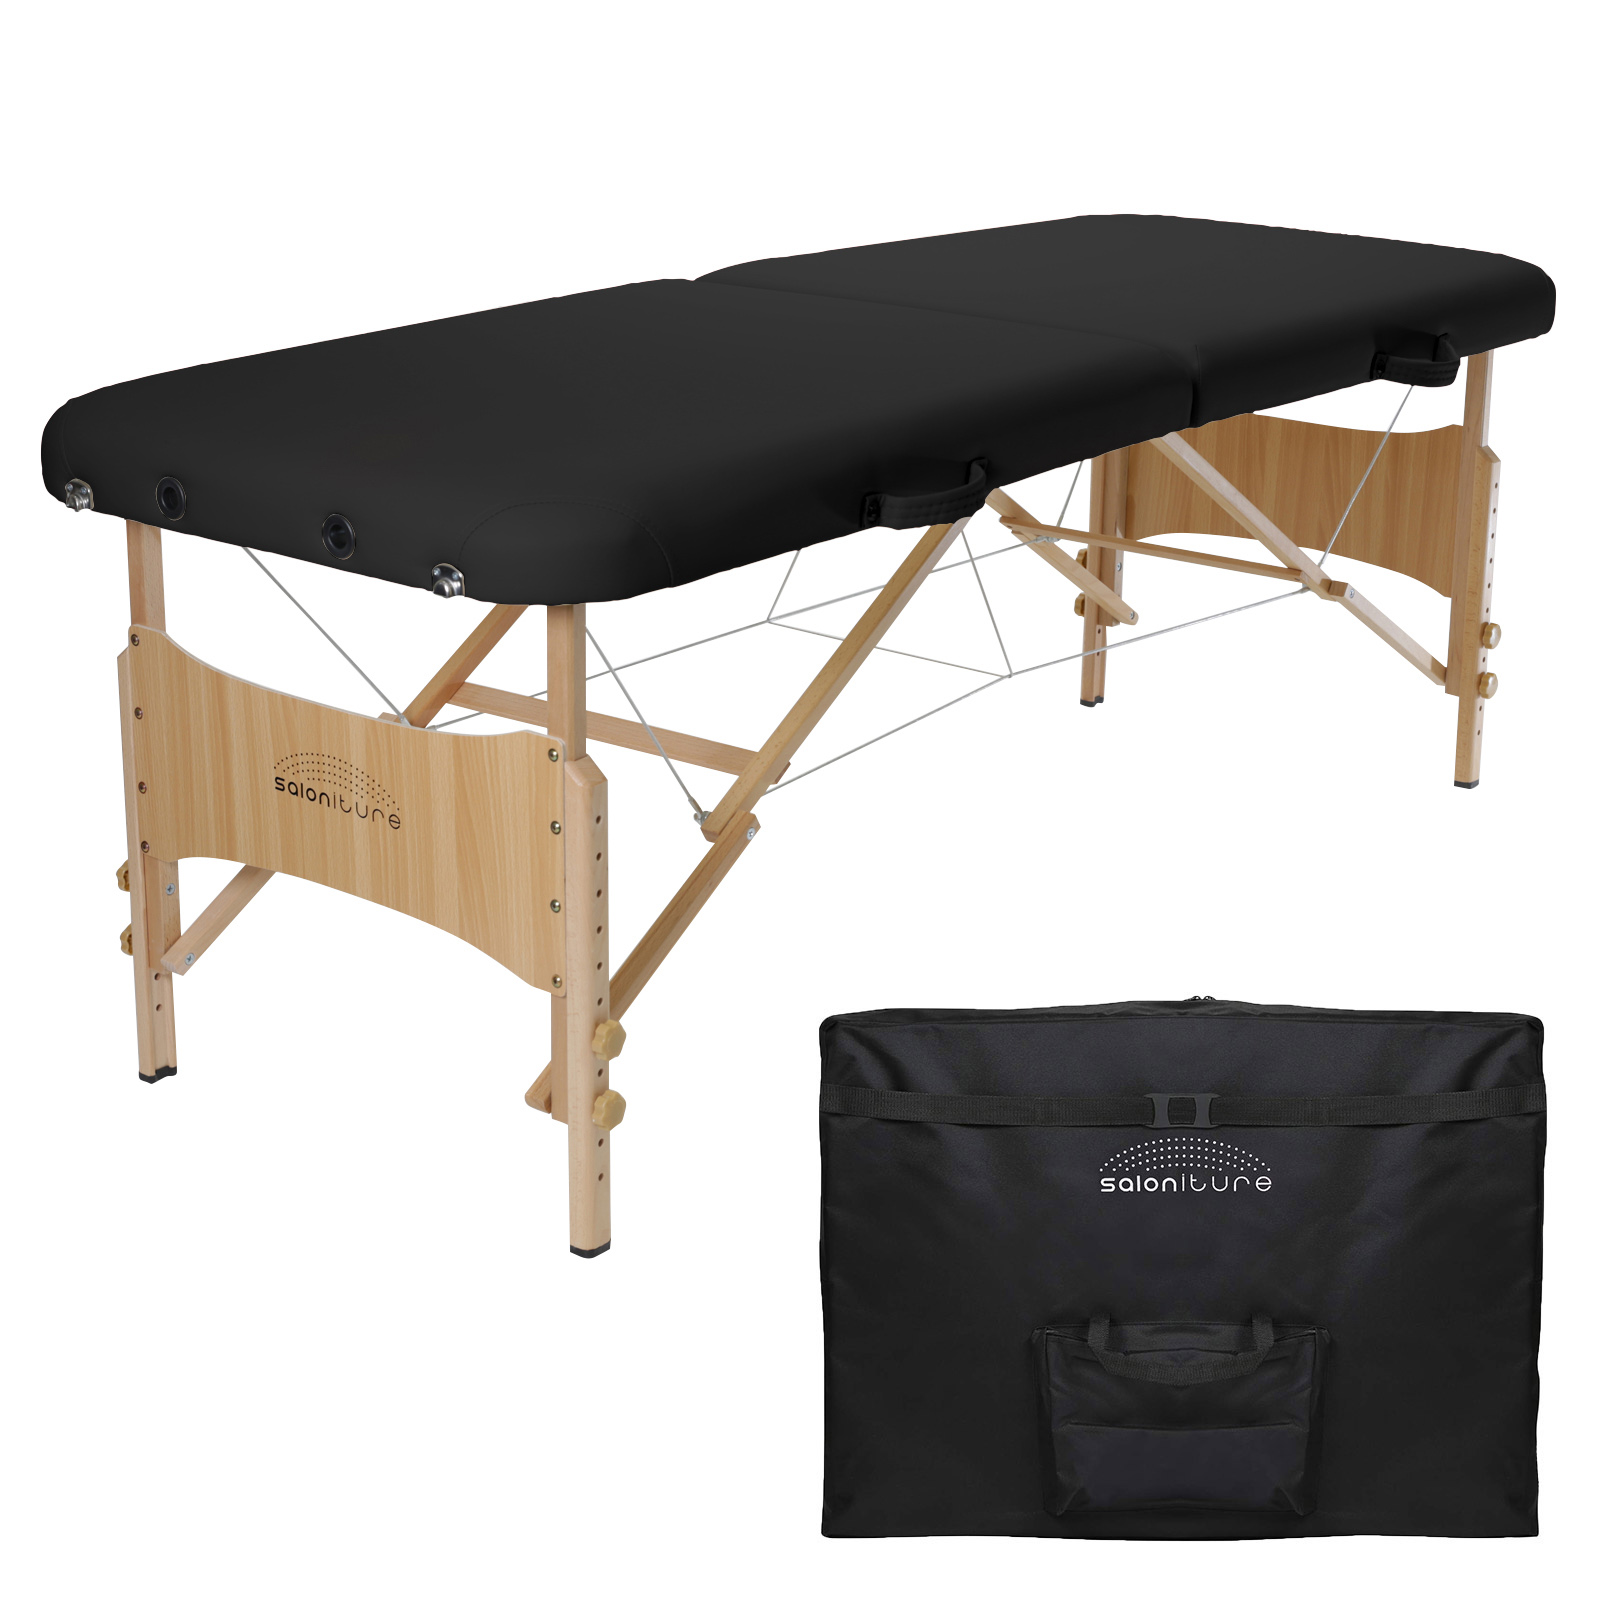 Saloniture Basic Portable Folding Massage Table - Multiple Colors Available